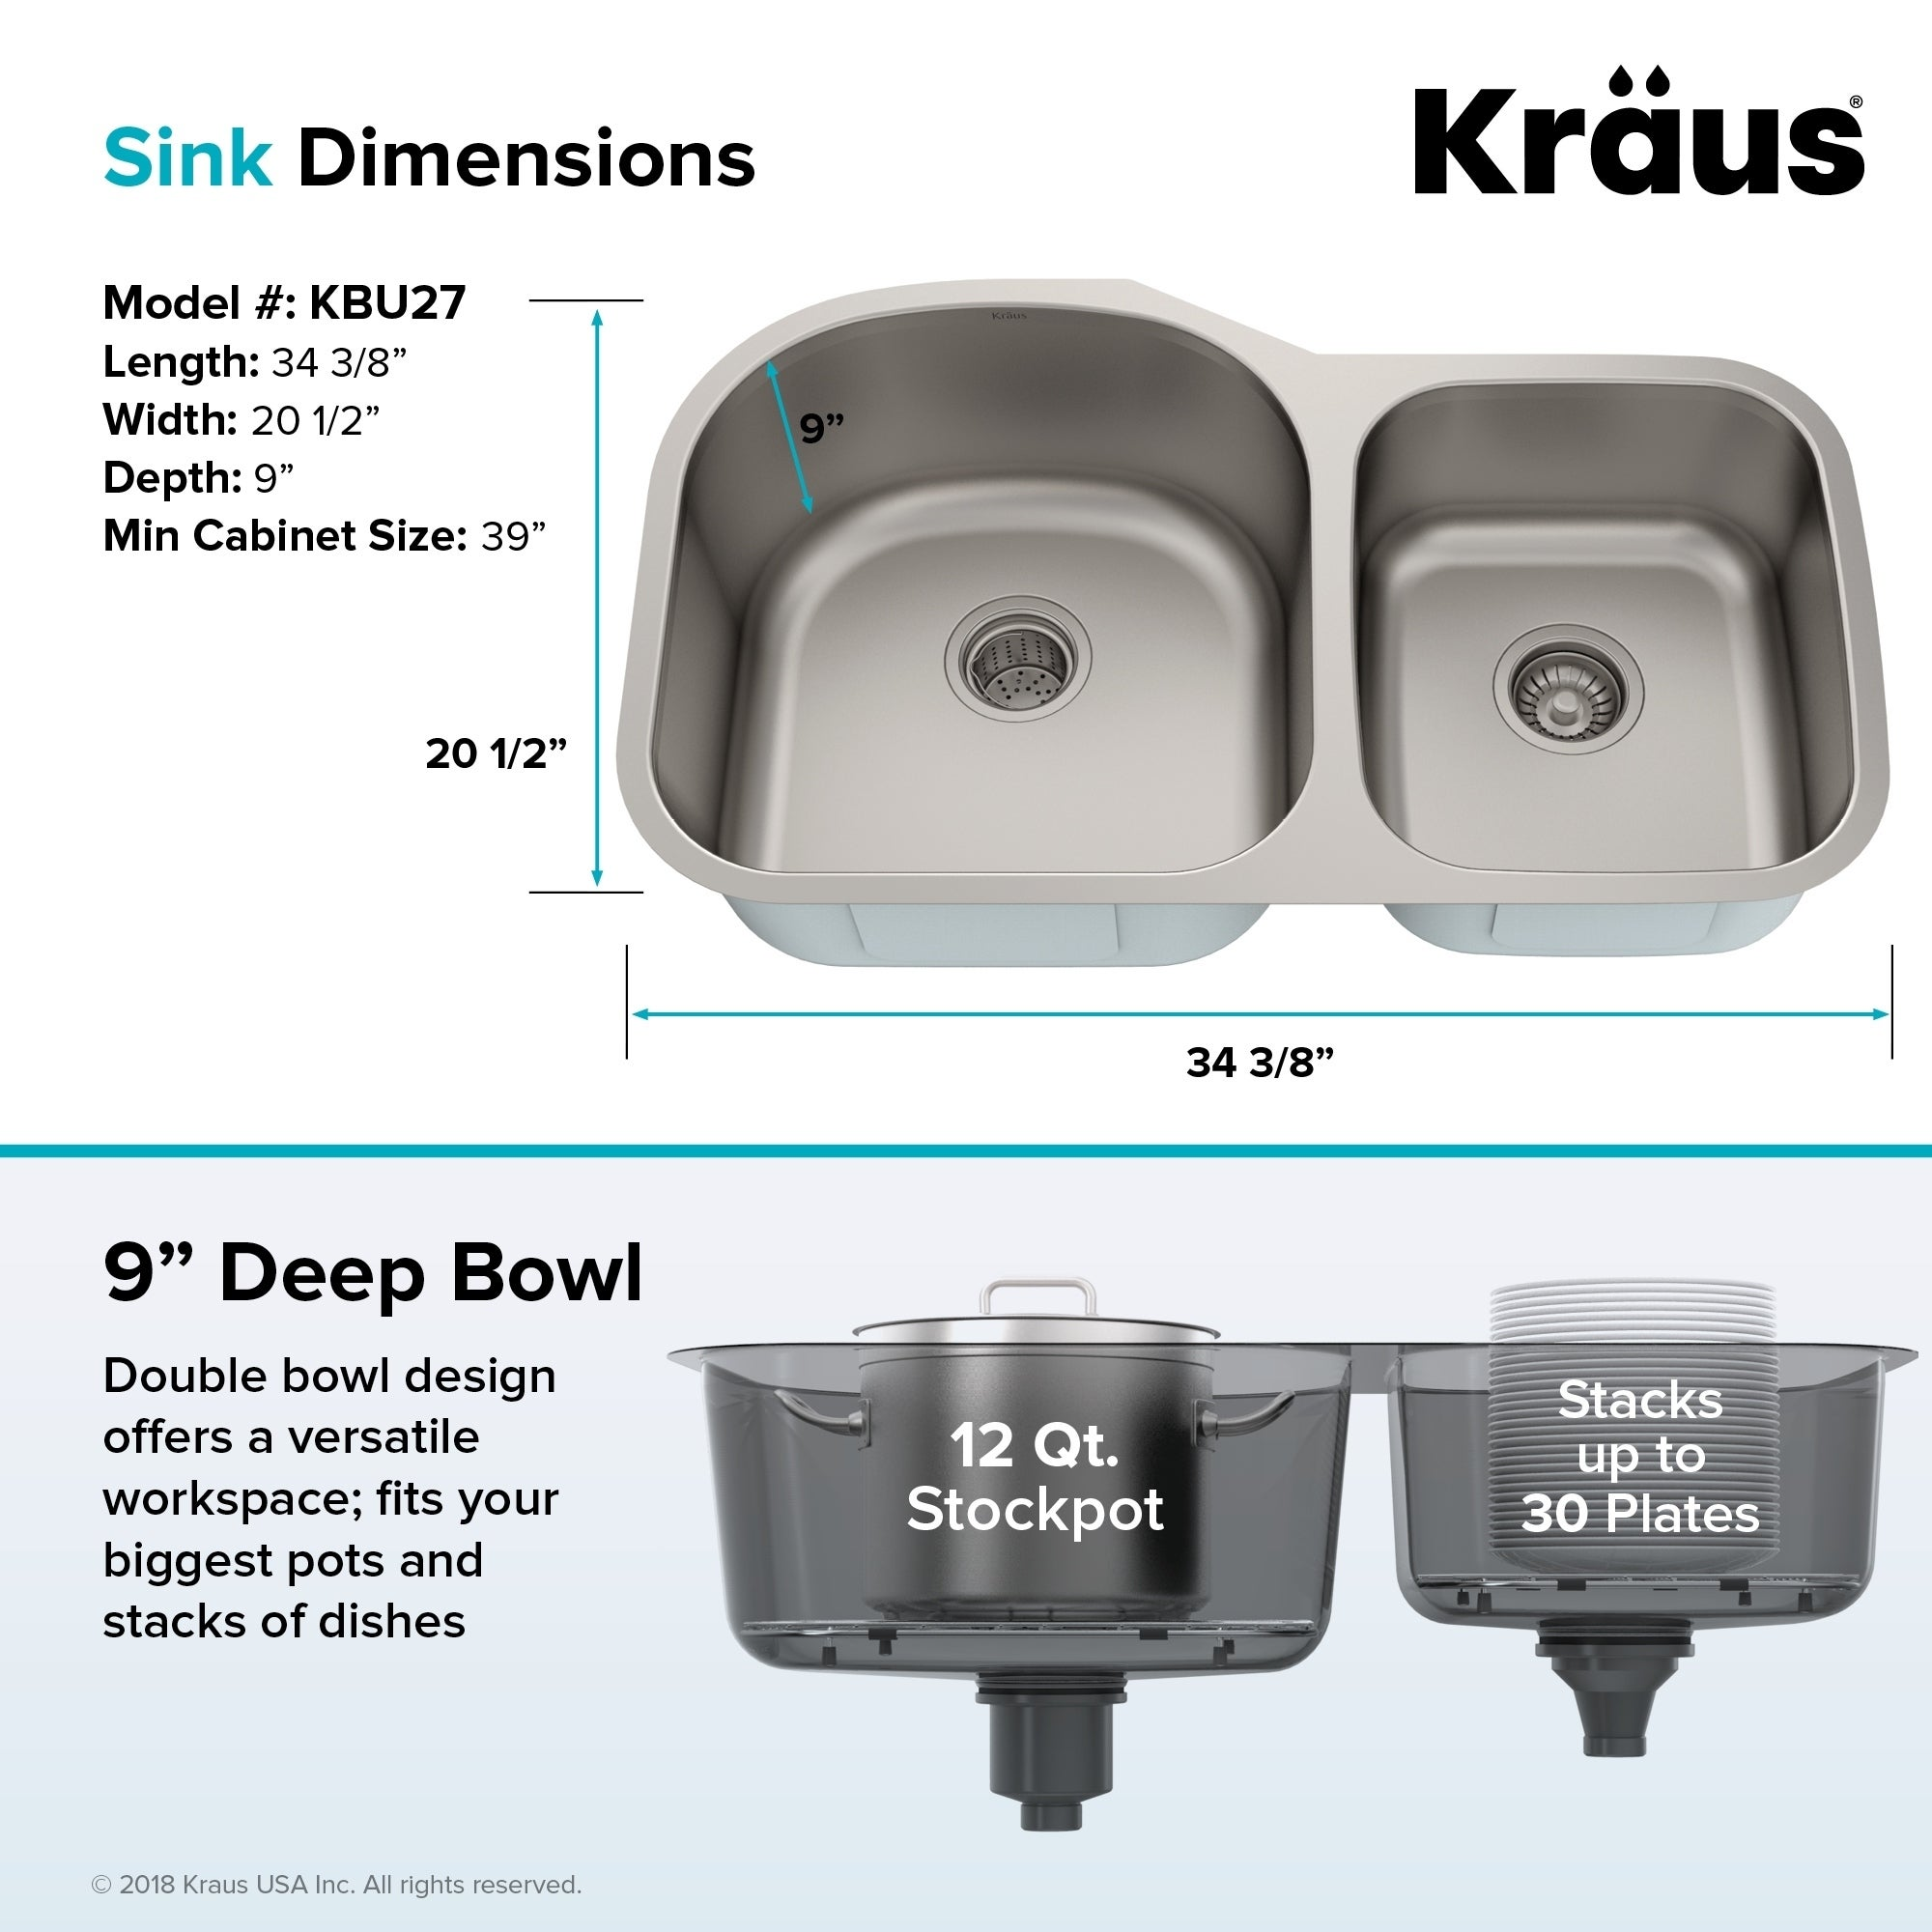 Undermount Kitchen Sink Measurements on swanstone kitchen sinks, antique kitchen sinks, stainless steel kitchen sinks, overmount kitchen sinks, inset kitchen sinks, farm kitchen sinks, black kitchen sinks, ceramic kitchen sinks, stone sinks, single bowl kitchen sinks, undermount sinks 60 40, american standard kitchen sinks, home depot undermount sinks, smart divide kitchen sinks, granite kitchen sinks, solid surface kitchen sinks, kohler kitchen sinks, lowes kitchen sinks, farmhouse kitchen sinks, elkay sinks,